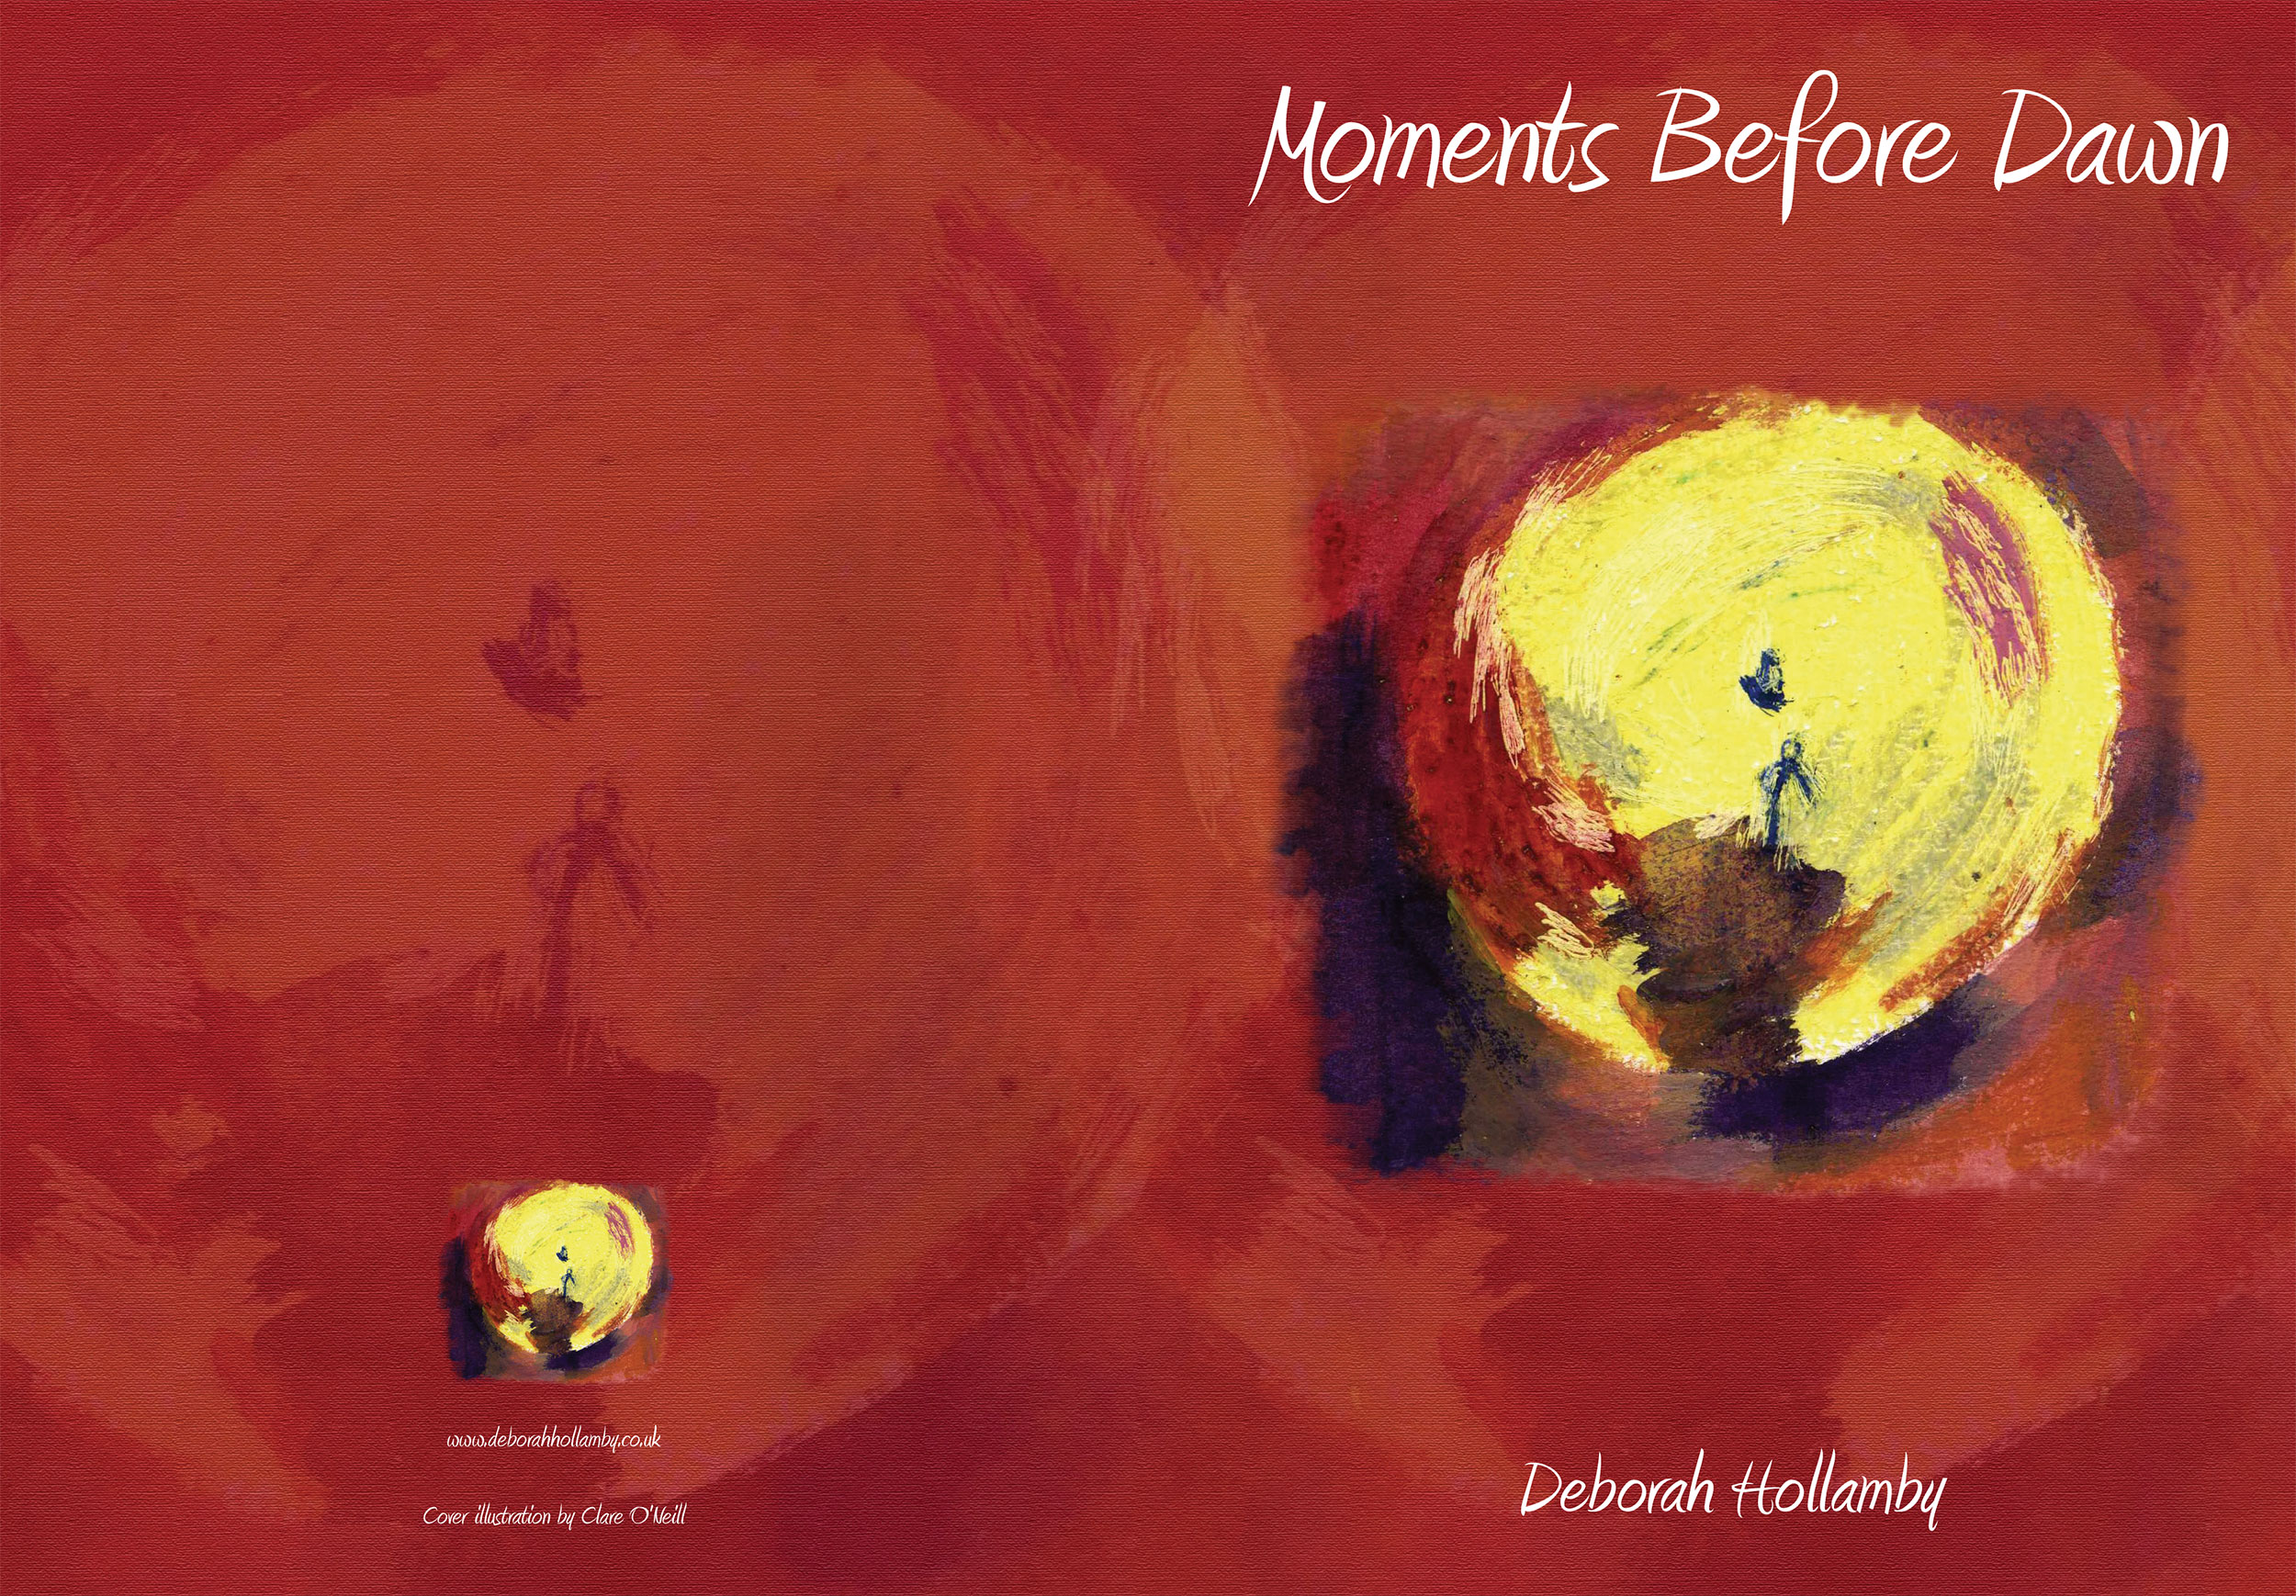 Moments Before Dawn Book & Book Cover Design